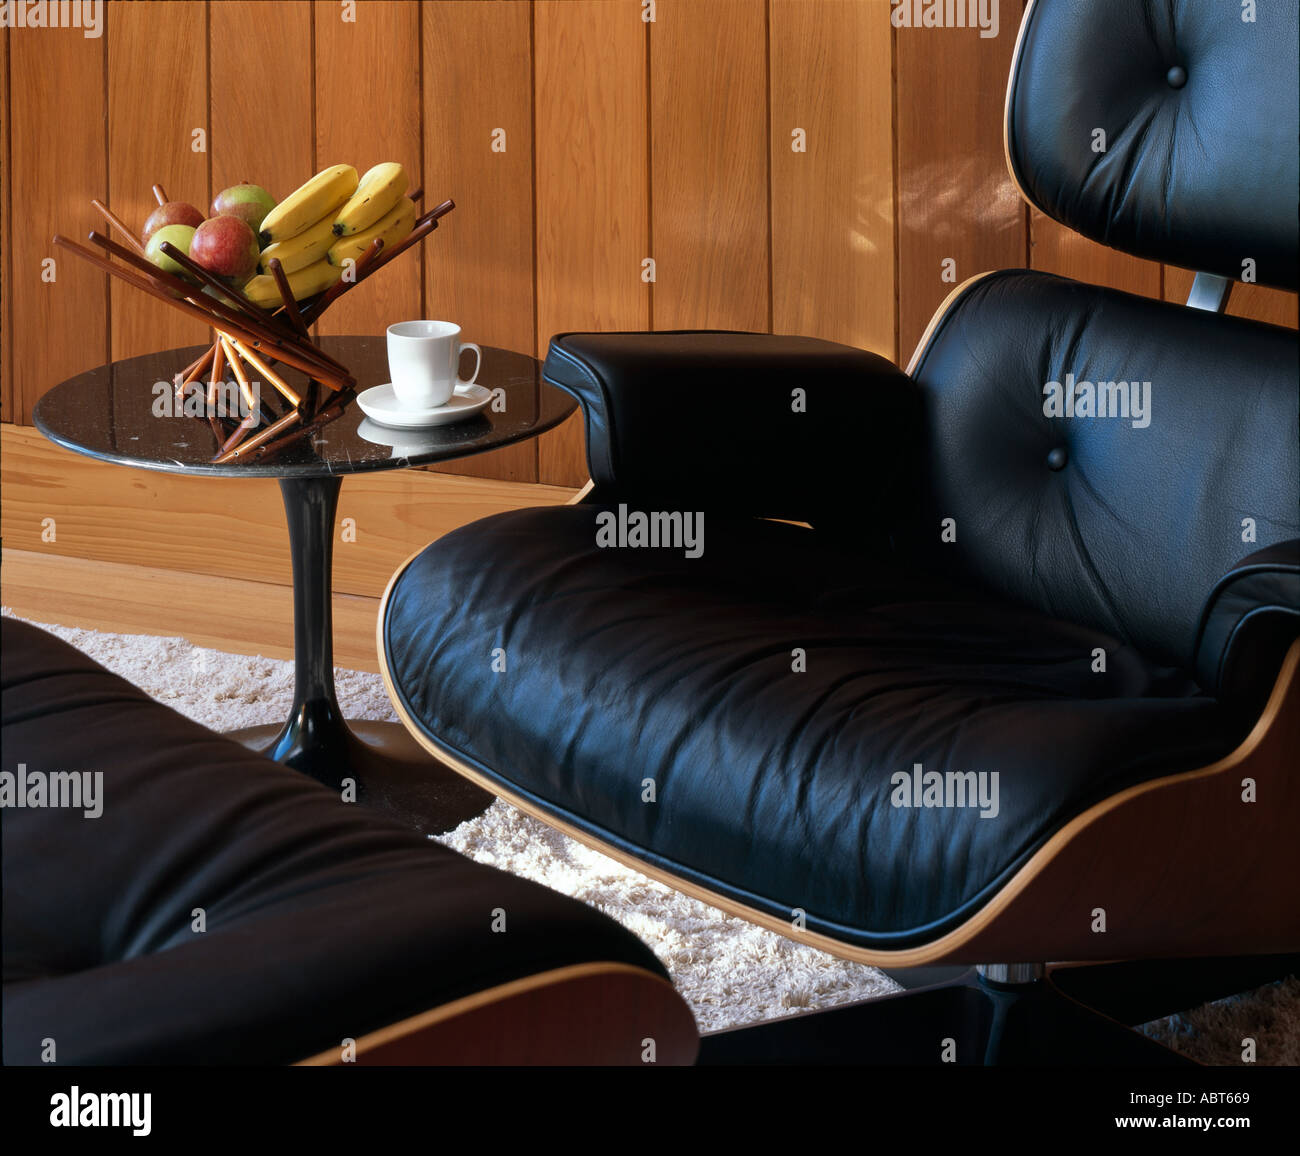 Space House, East Grinstead, West Sussex, detail of Eames Lounge Chair, 1956, in living area. Stock Photo